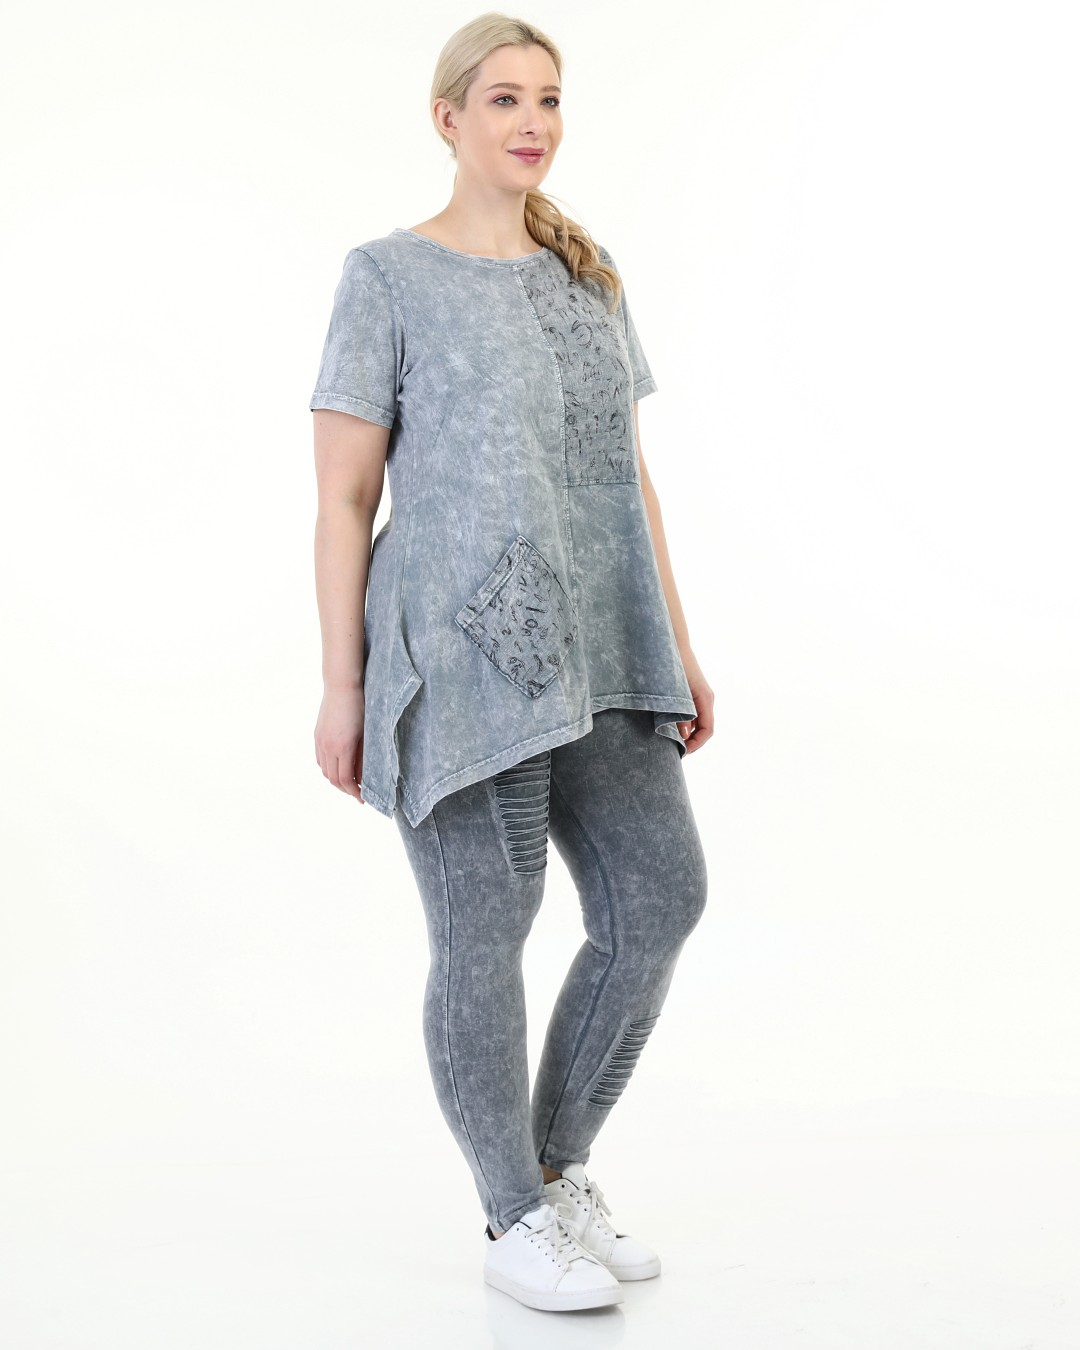 Diaves Women Summer Fashion Plus Size Self-Effect Acid-Flushing Ripped Casual Track Suit Sets Turkish Quality